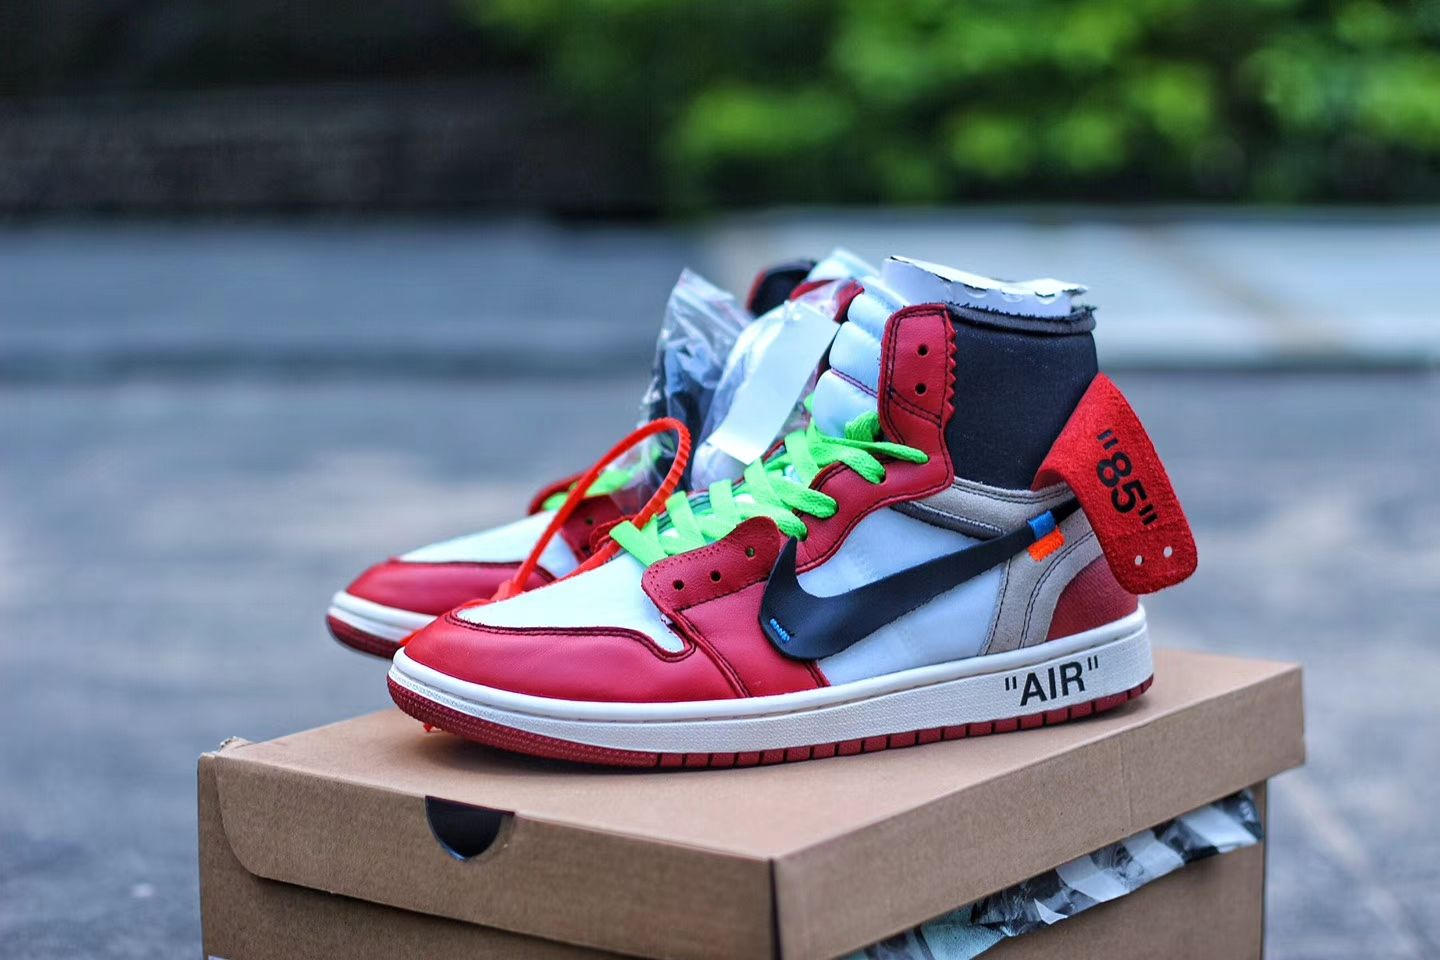 59ed00bd93dd OFF-WHITE x Air Jordan 1 Retro High OG Chicago AA3834-101 Contact email   kicksvogue88 gmail.com